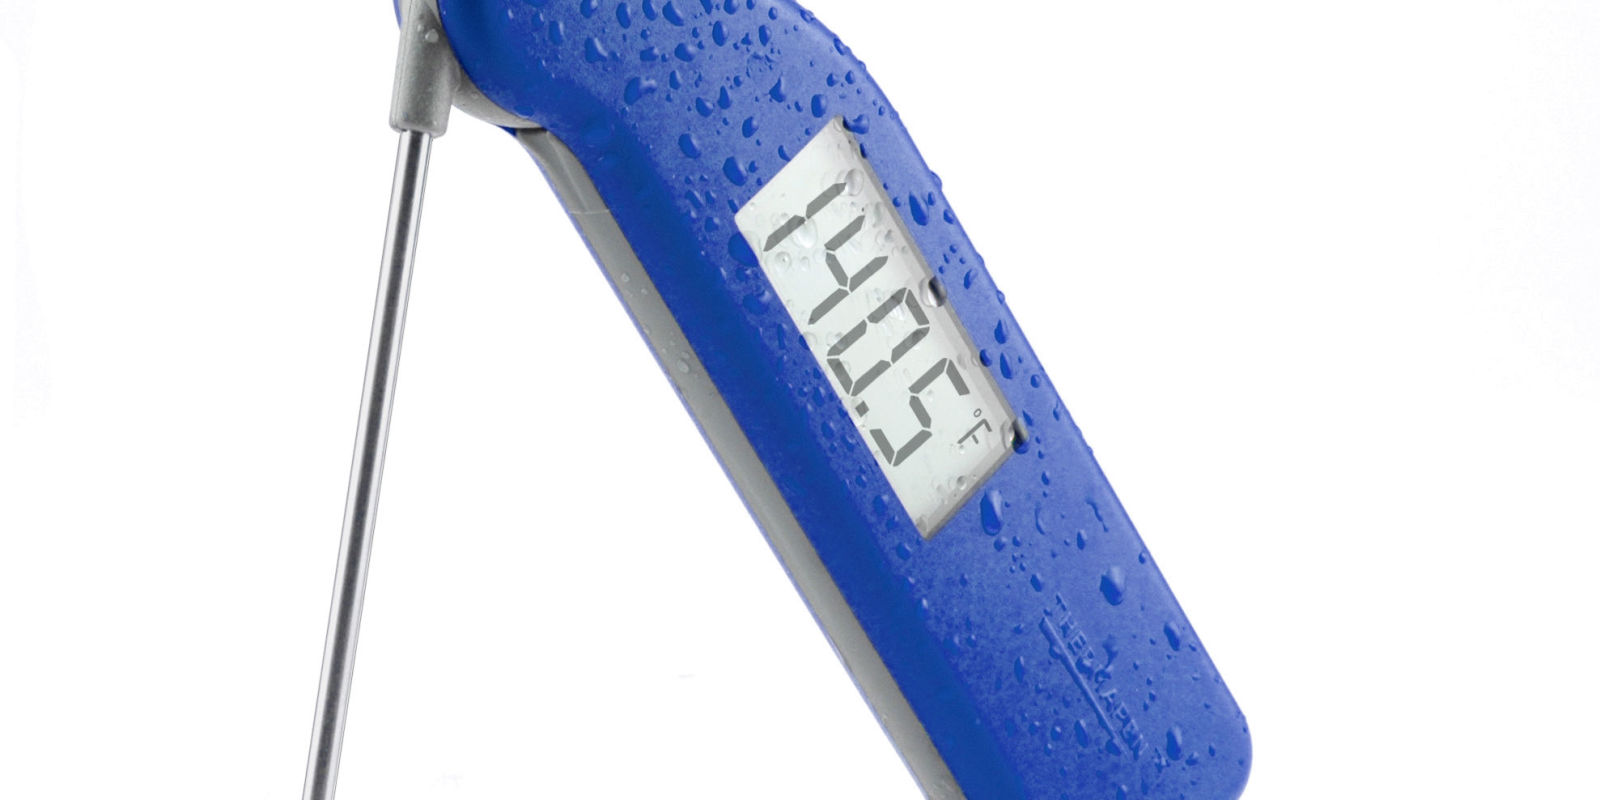 All clad instant read thermometer - November 2014